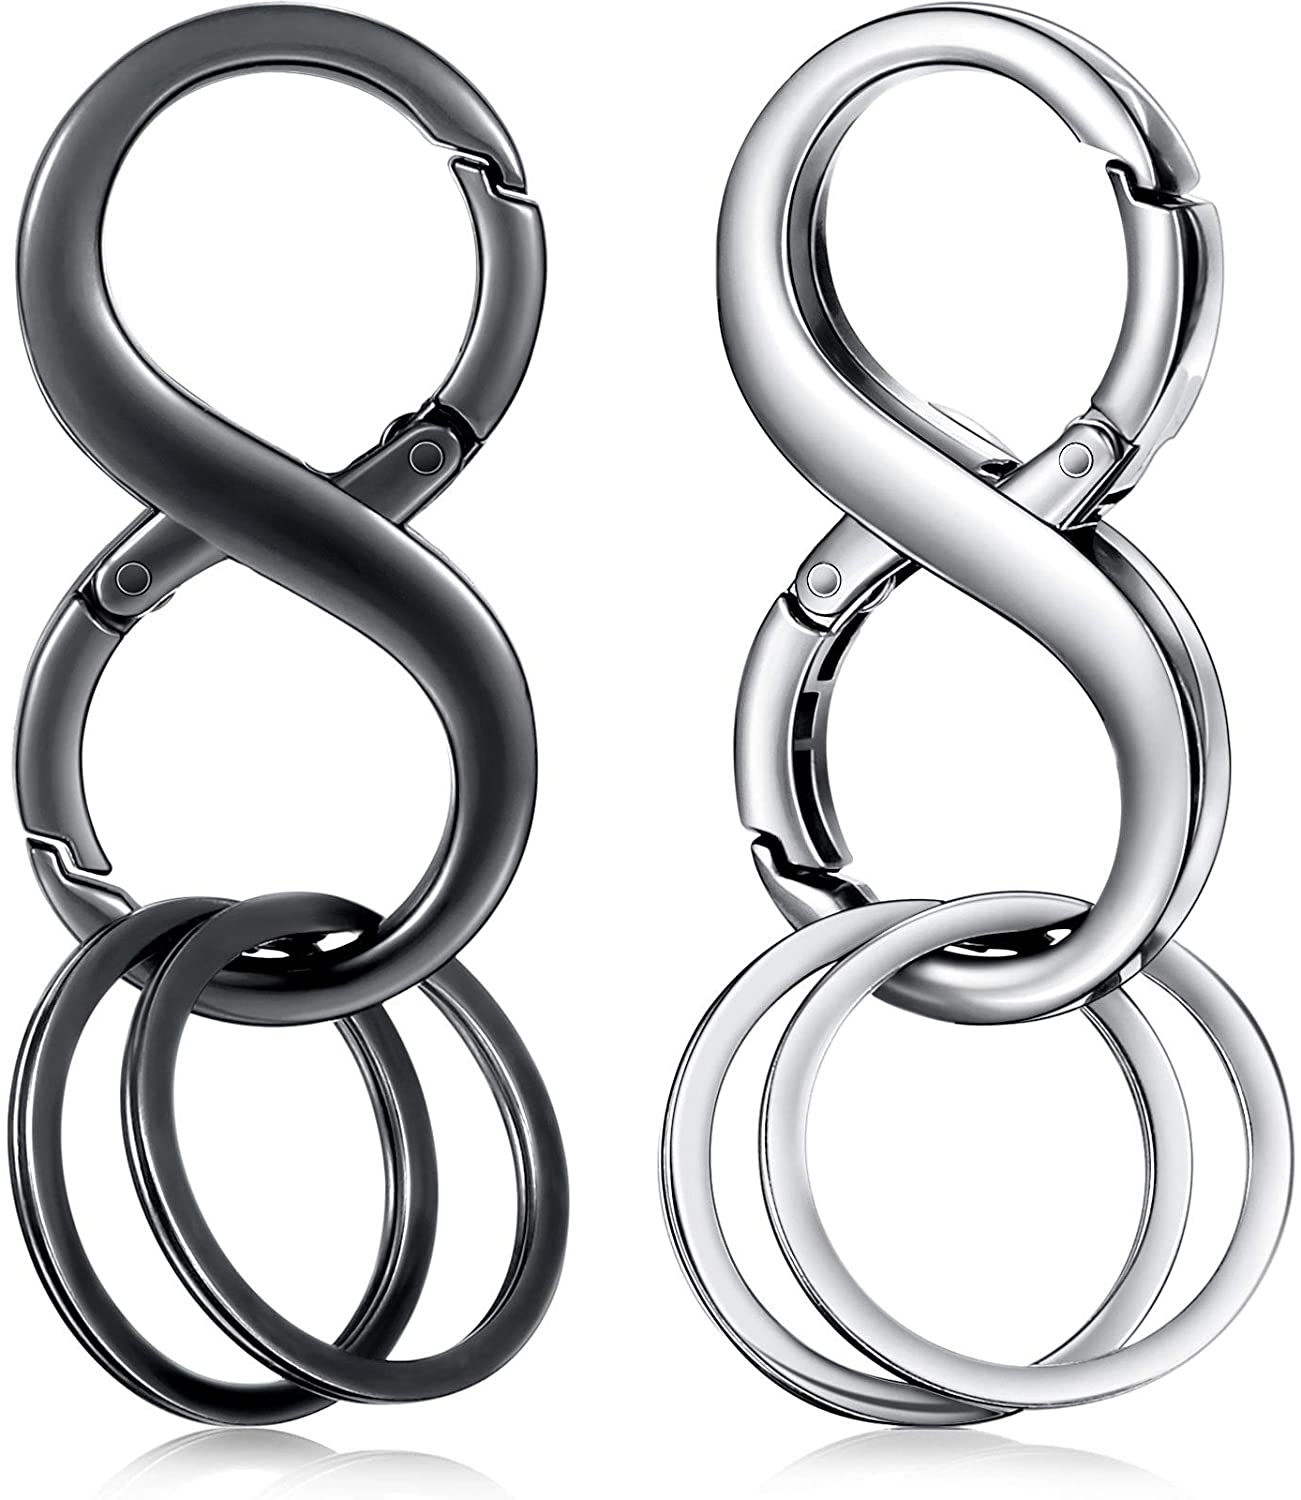 Black and Silver 2 Pieces 8 Shape Car Key Chains Car Detachable Key Chains Zinc Alloy Business Key Rings with 4 Extra Key Rings for Men and Women